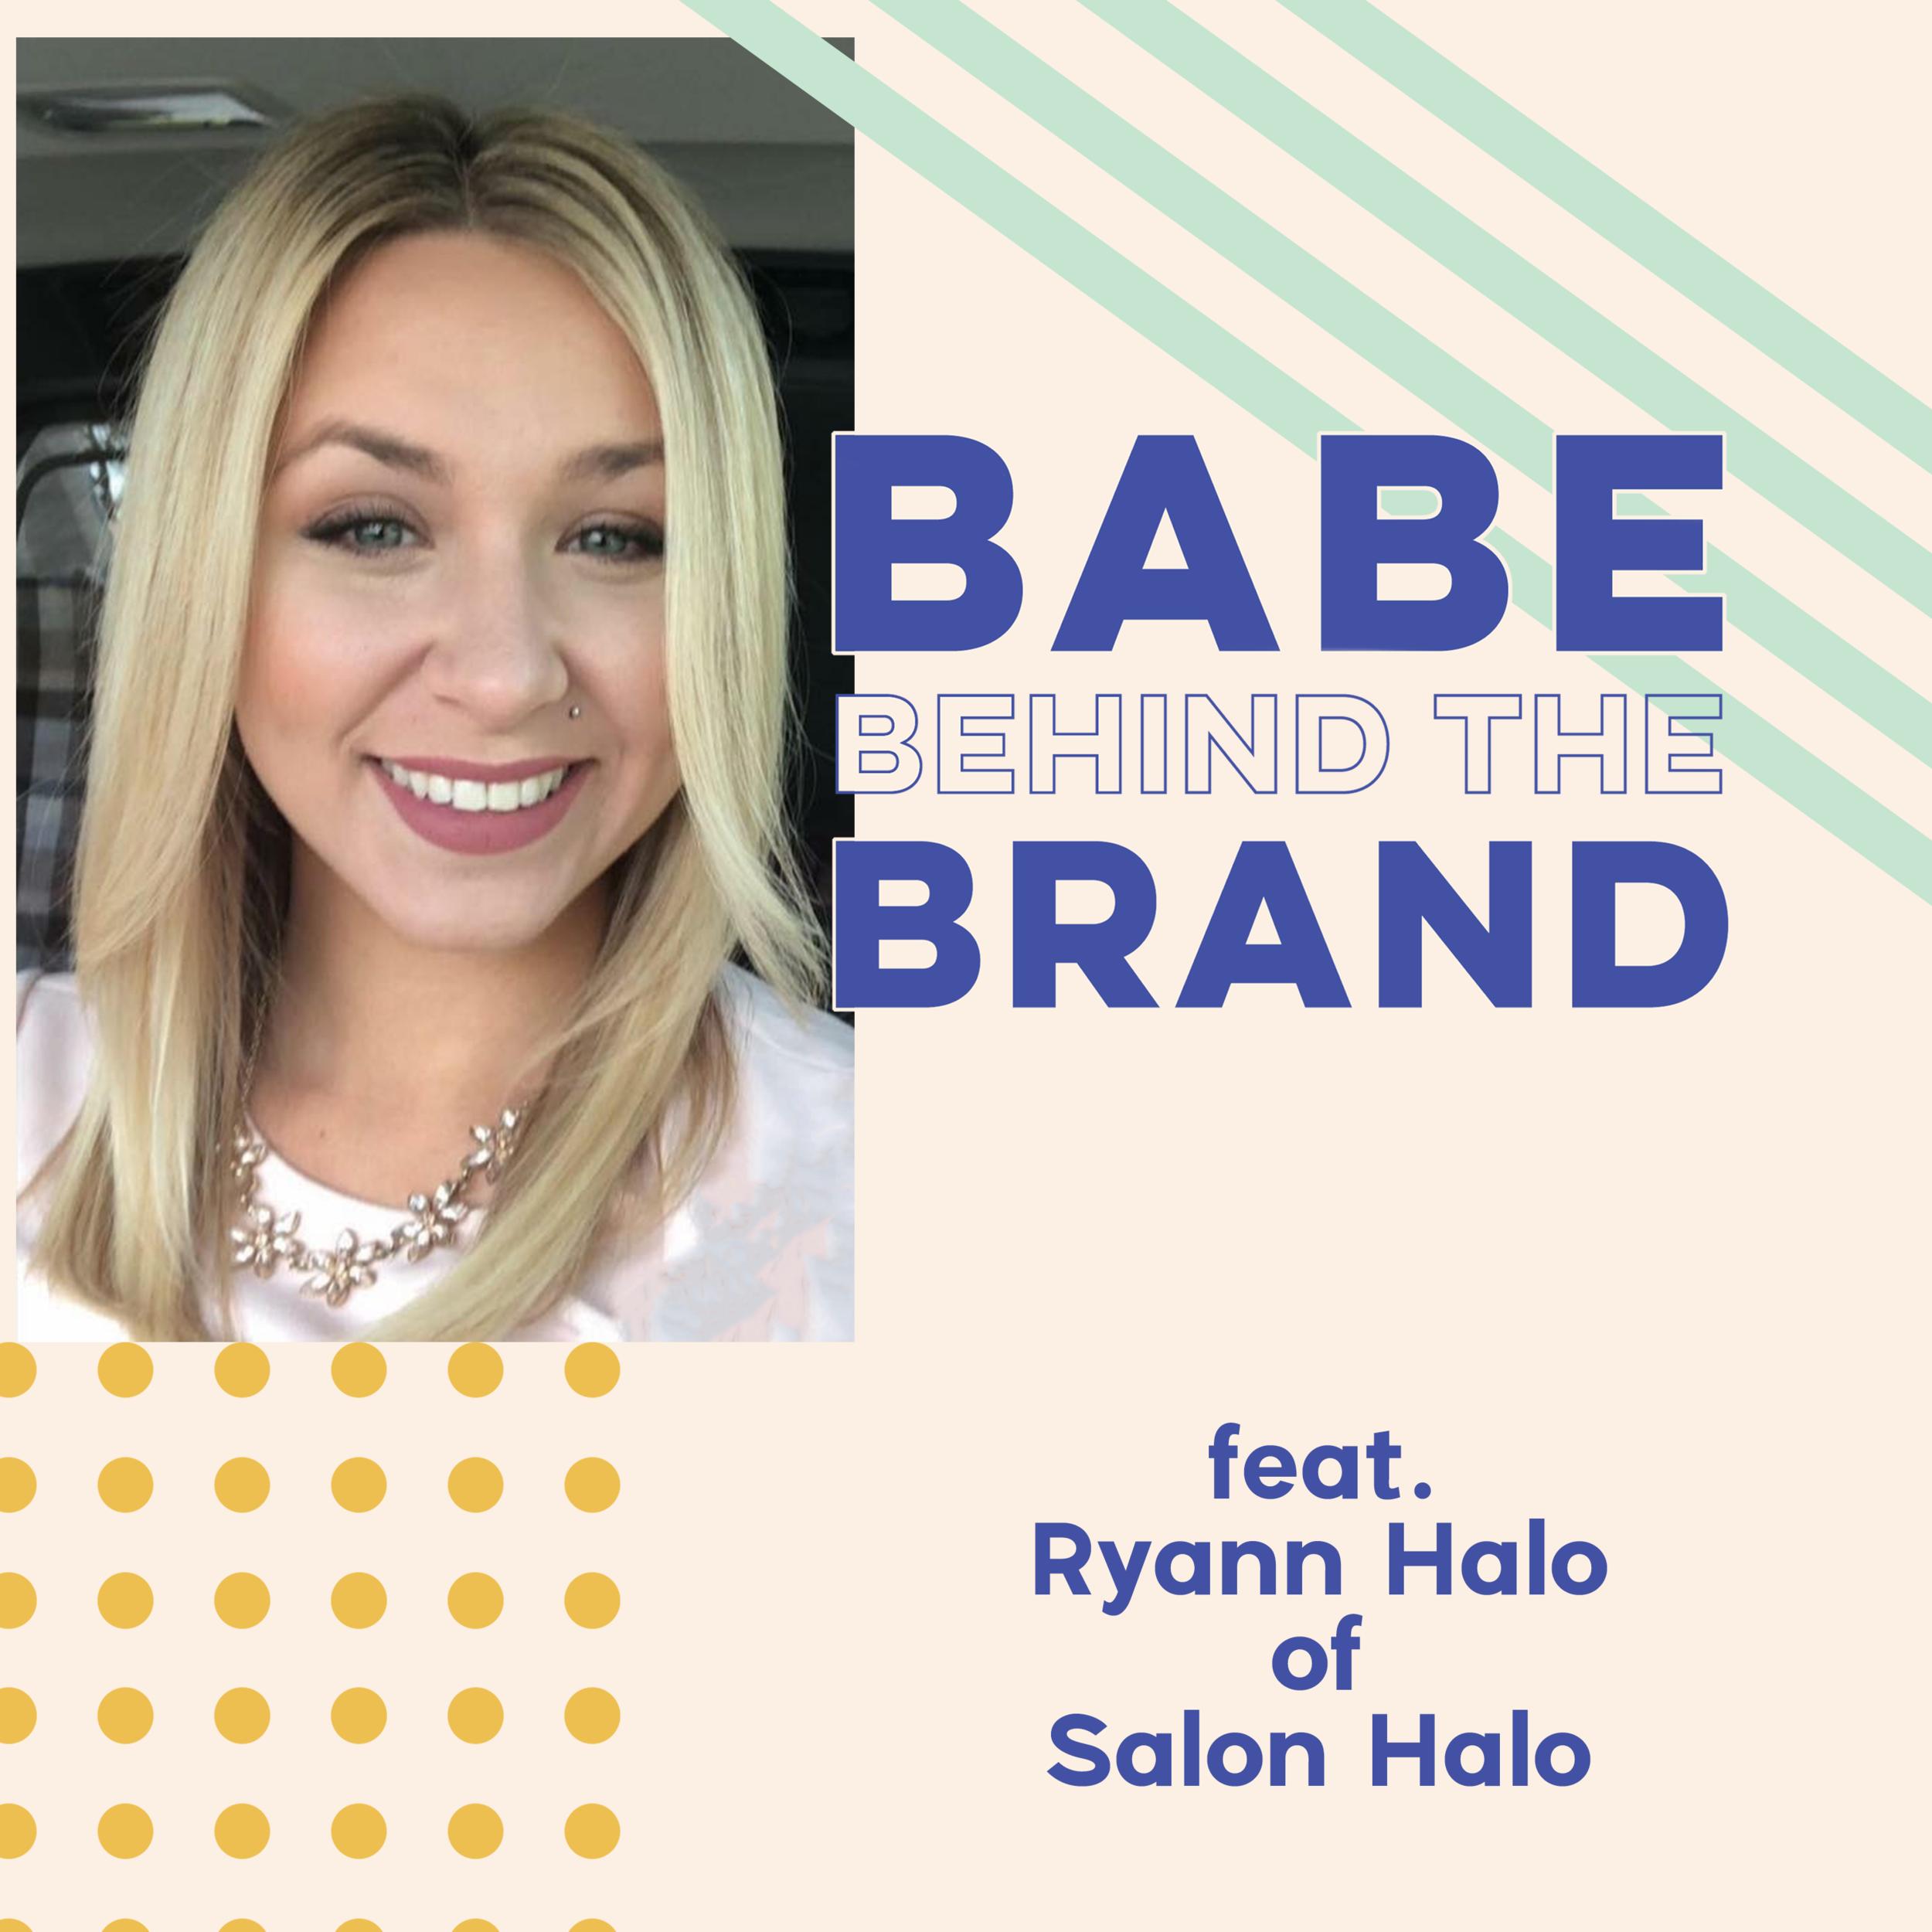 Ryann Halo Podcast Graphic_Babe Behind The Brand Podcast_Babe Crafted.png